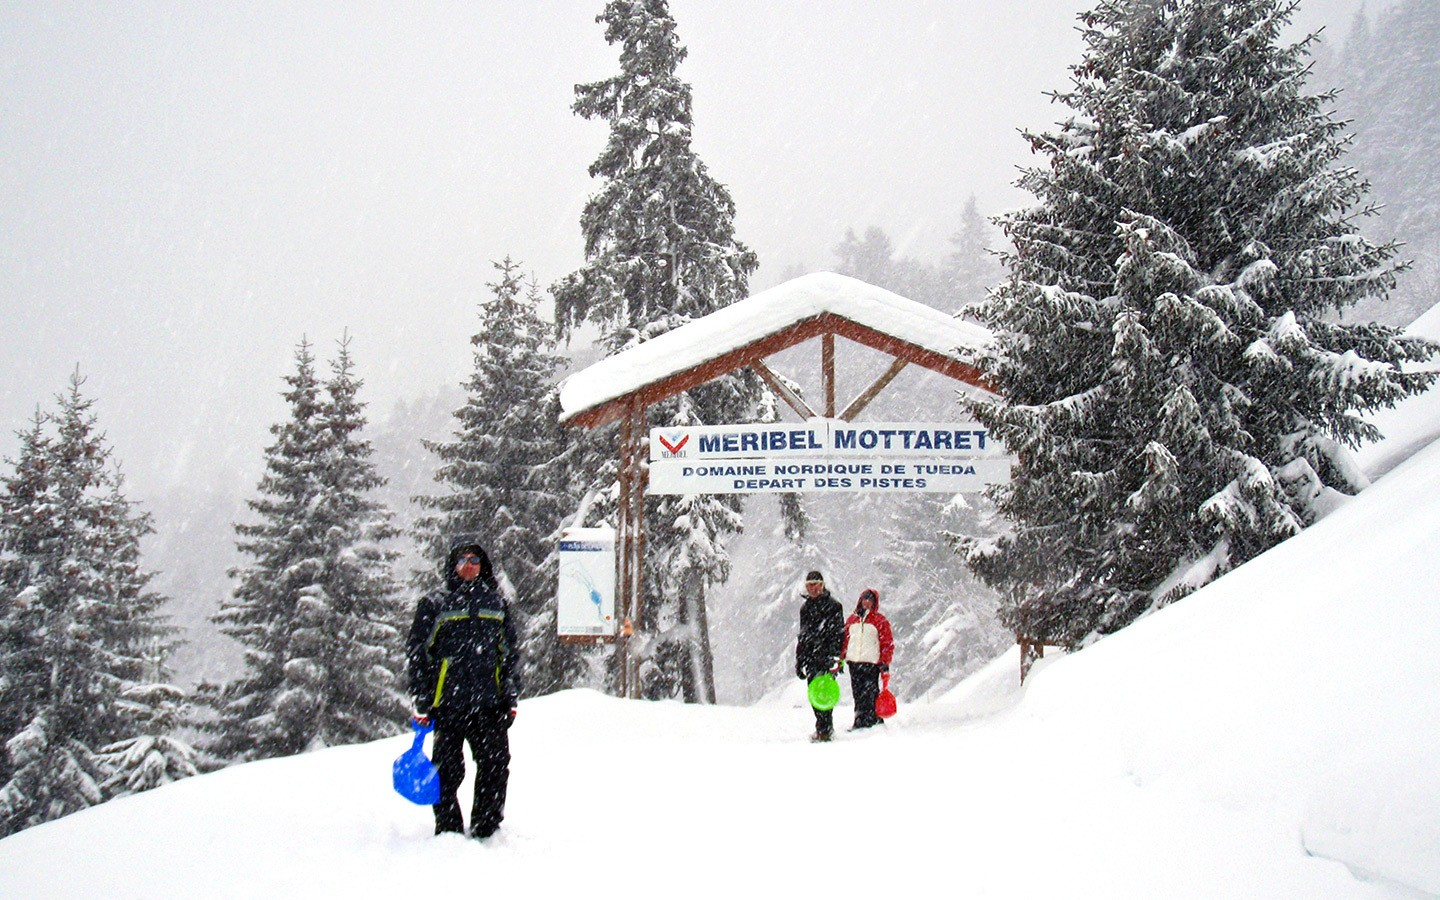 The Plan de la Tuéda nature reserve in Meribel-Mottaret